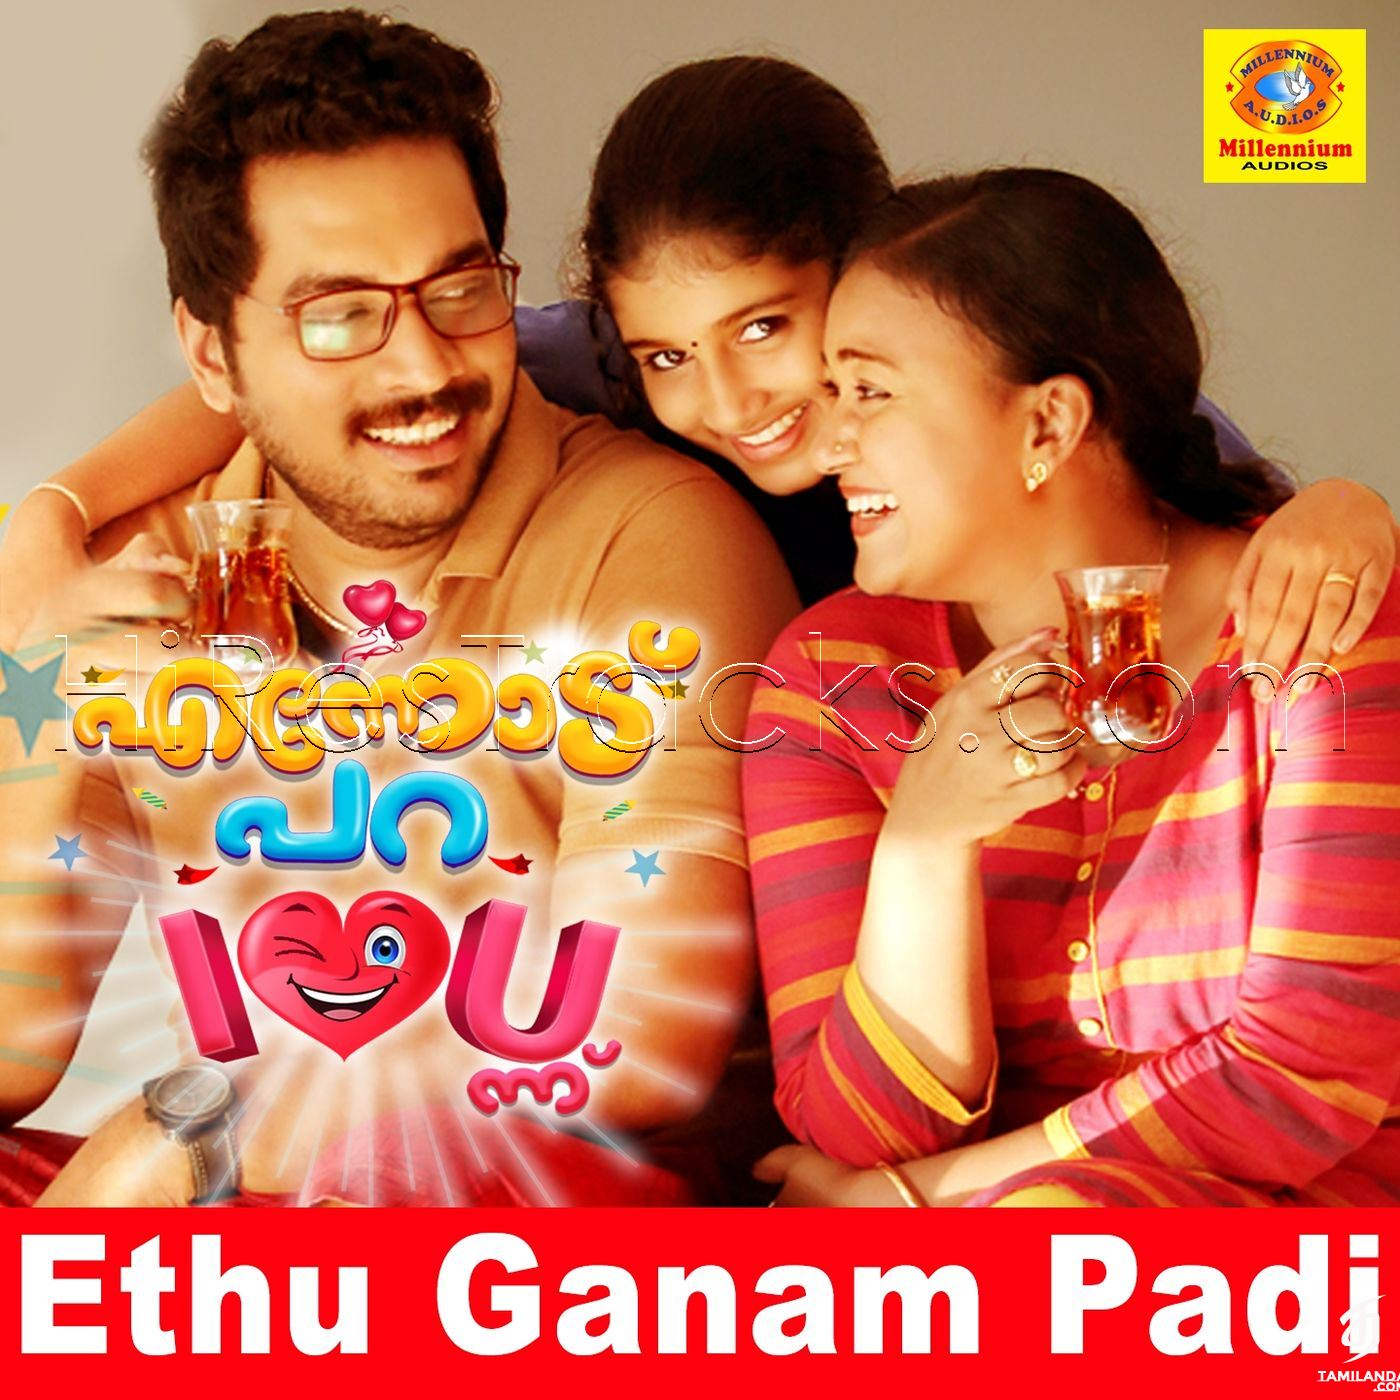 Ethu Ganam Padi (From Ennodu Para I Love You Ennu ) (2019) (Afsal Yusaf) (Milennium Audios) [Digital-DL-FLAC]